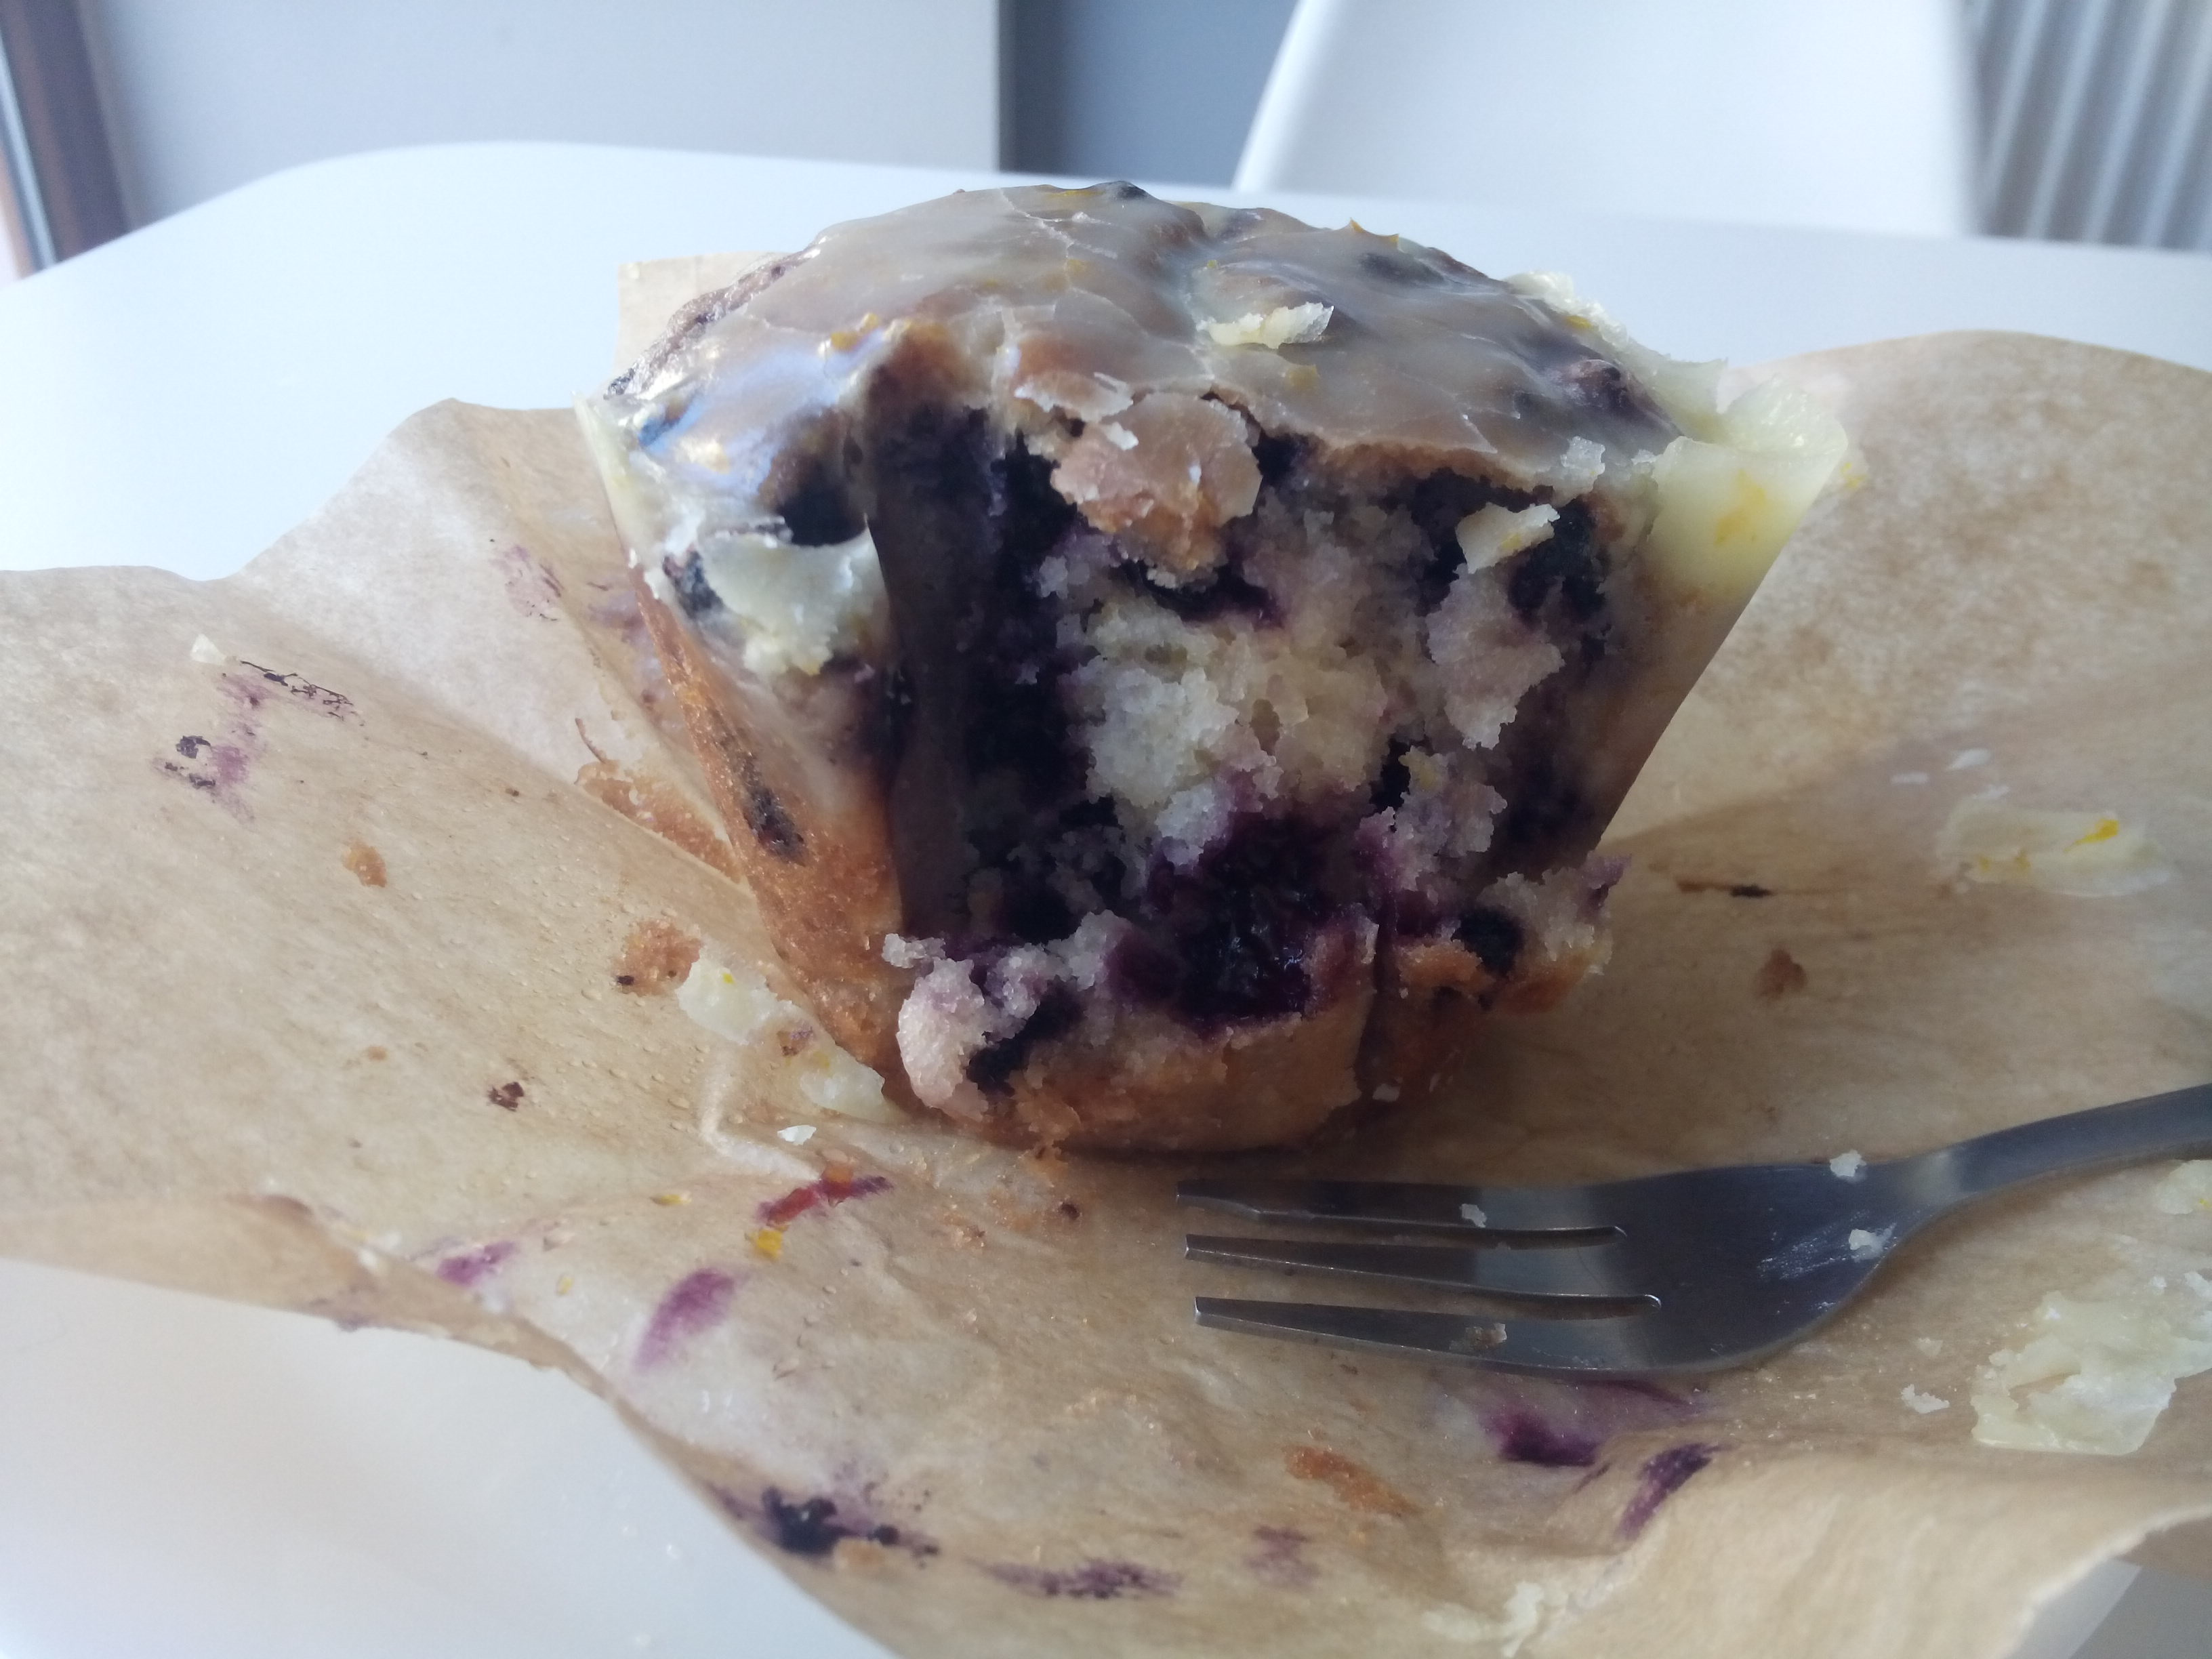 A half eaten muffin from the front, exposing purple berry blotches and crusted with lemon frosting